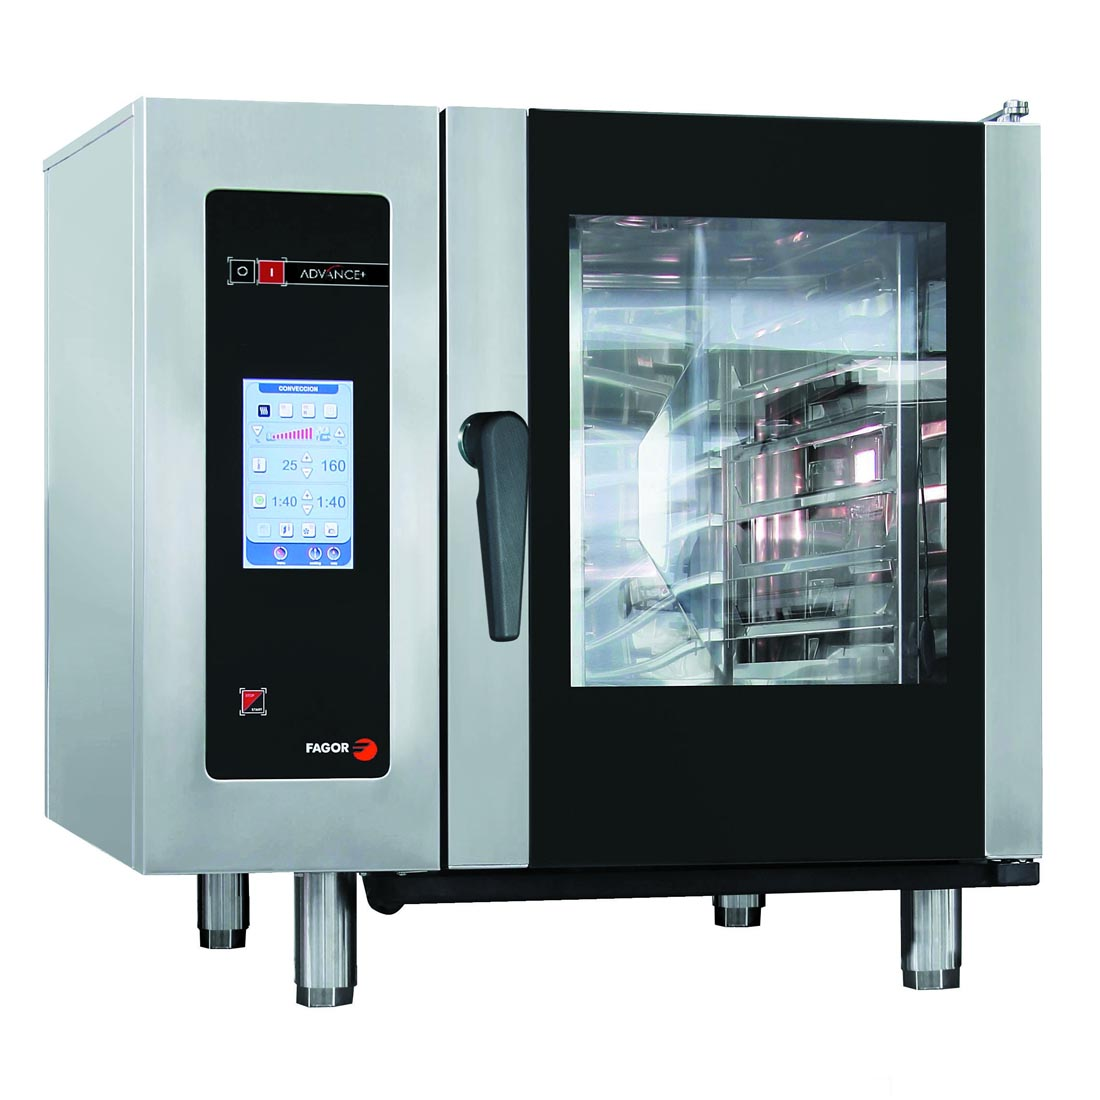 Fagor Advanced Plus Electric 6 Trays Touchscreen Control Combi Oven APE-061